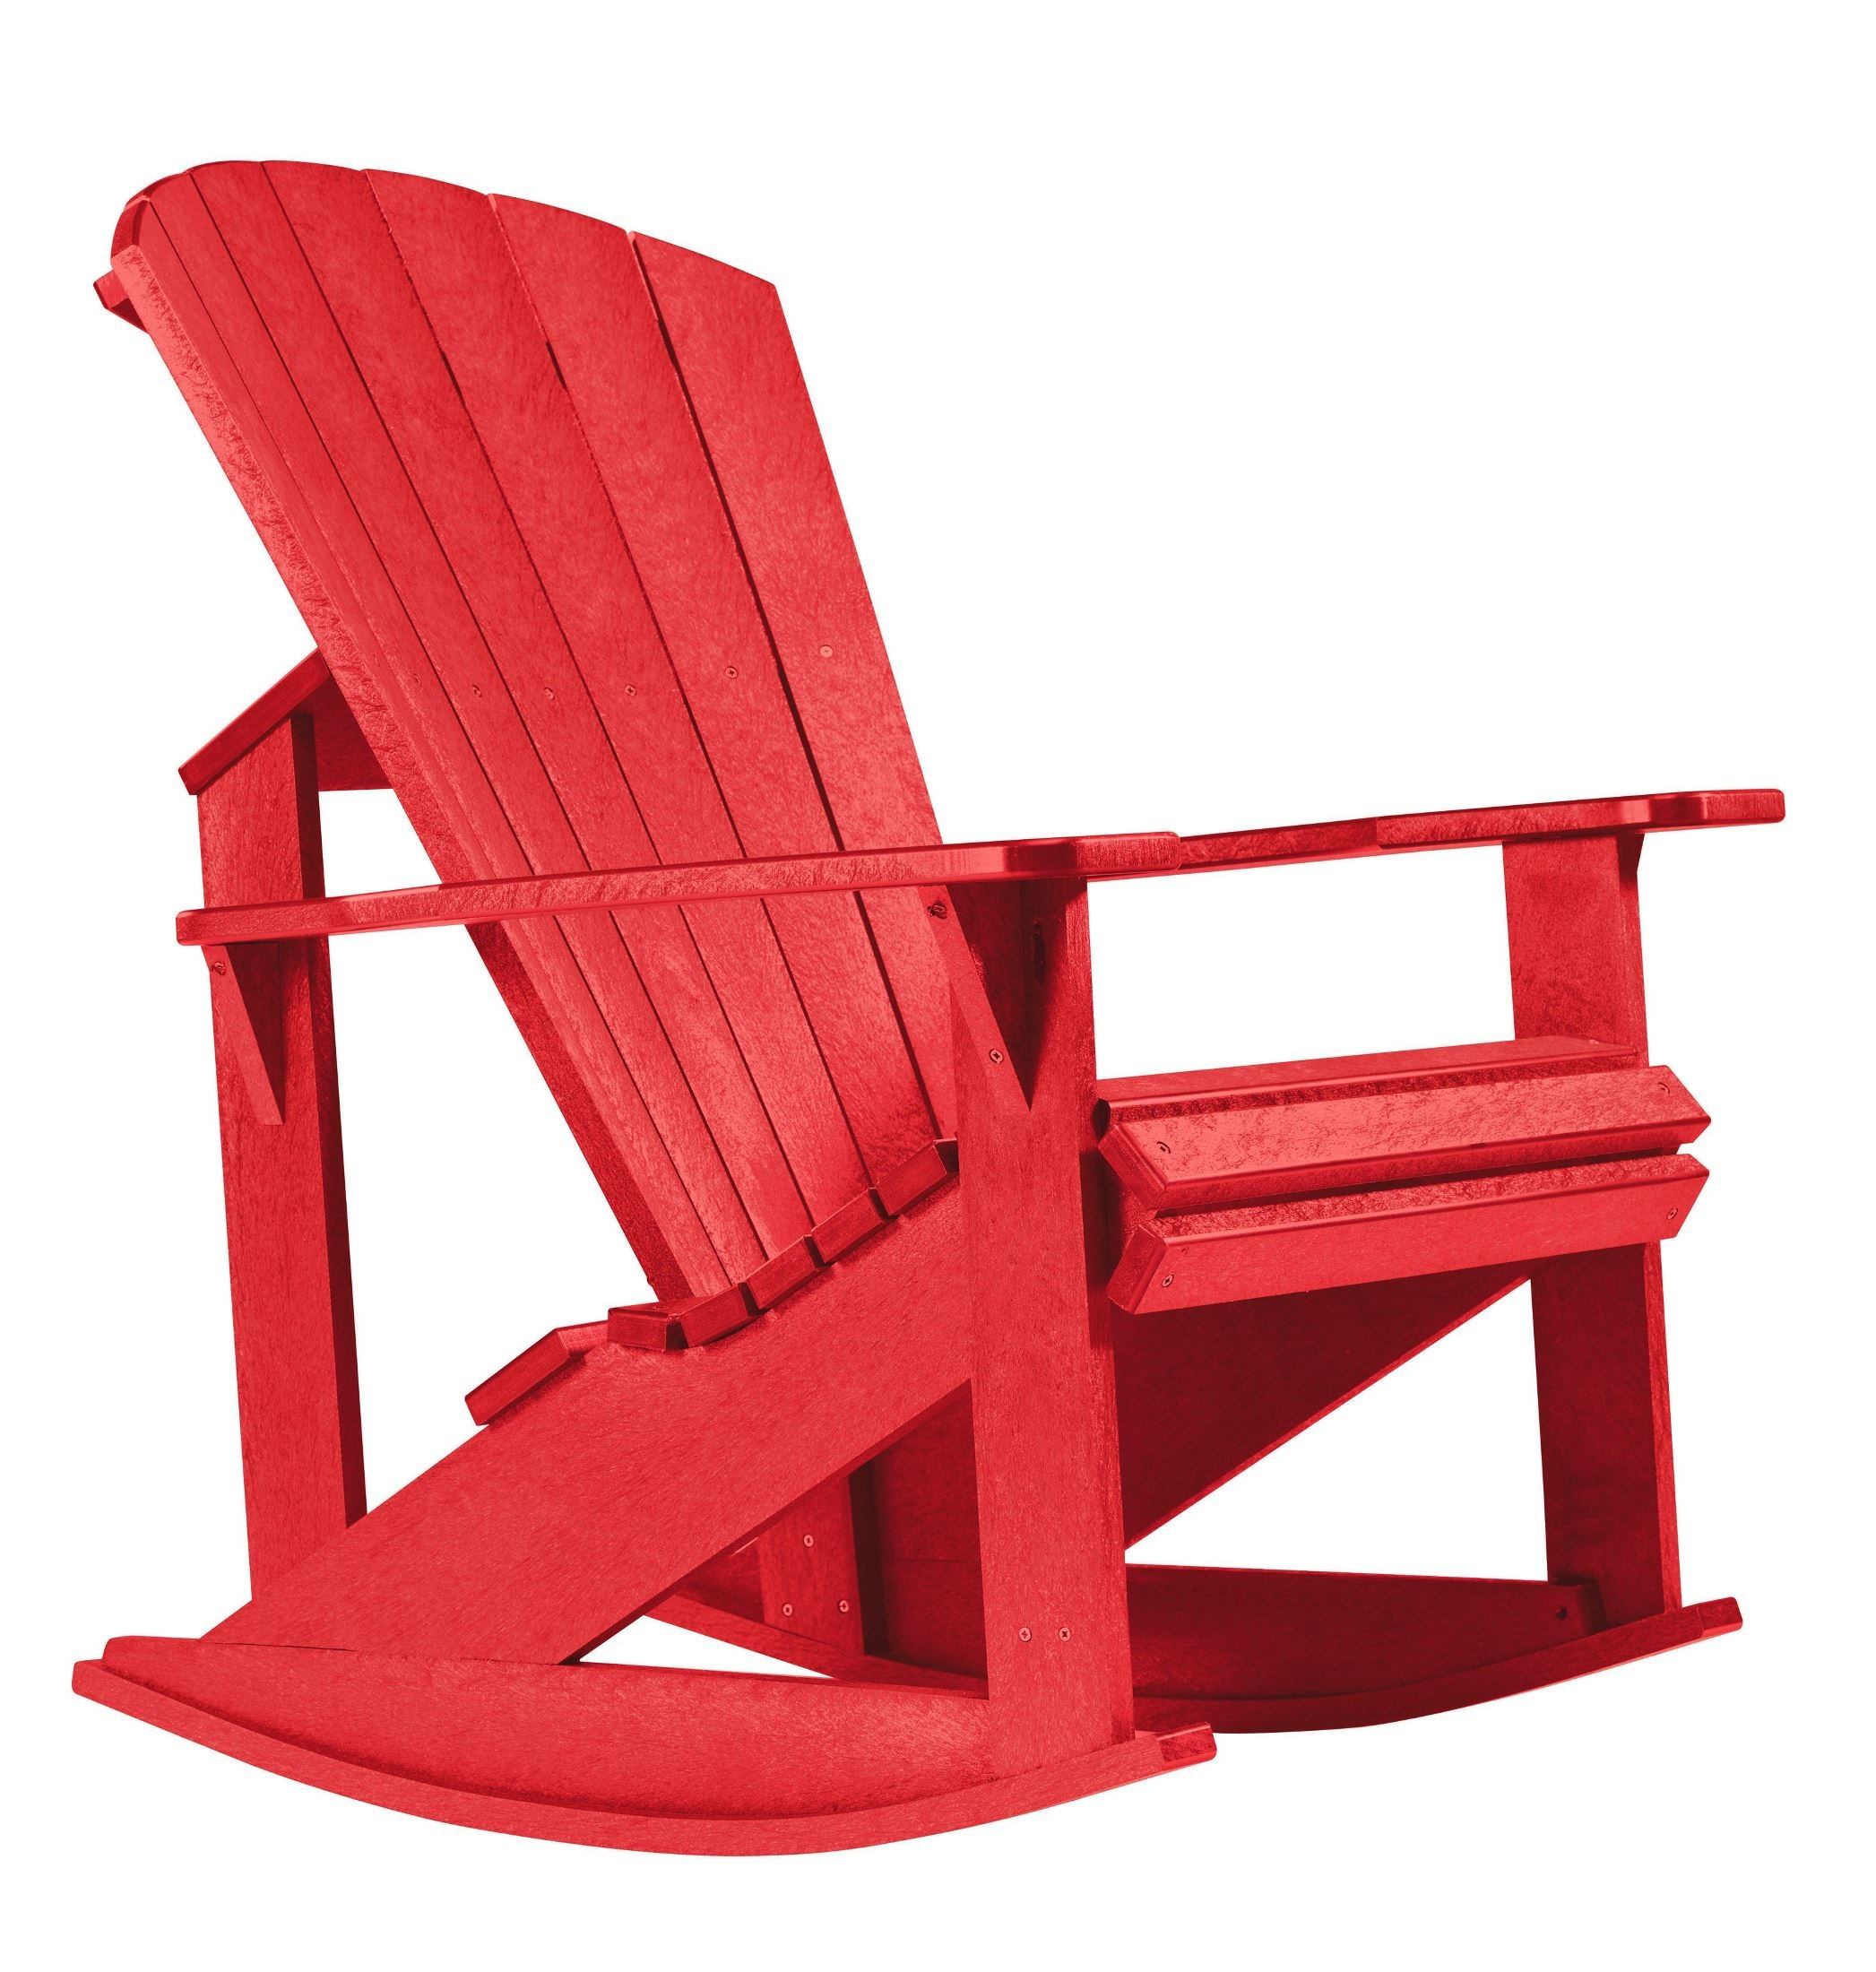 Generations Red Adirondack Rocking Chair from CR Plastic